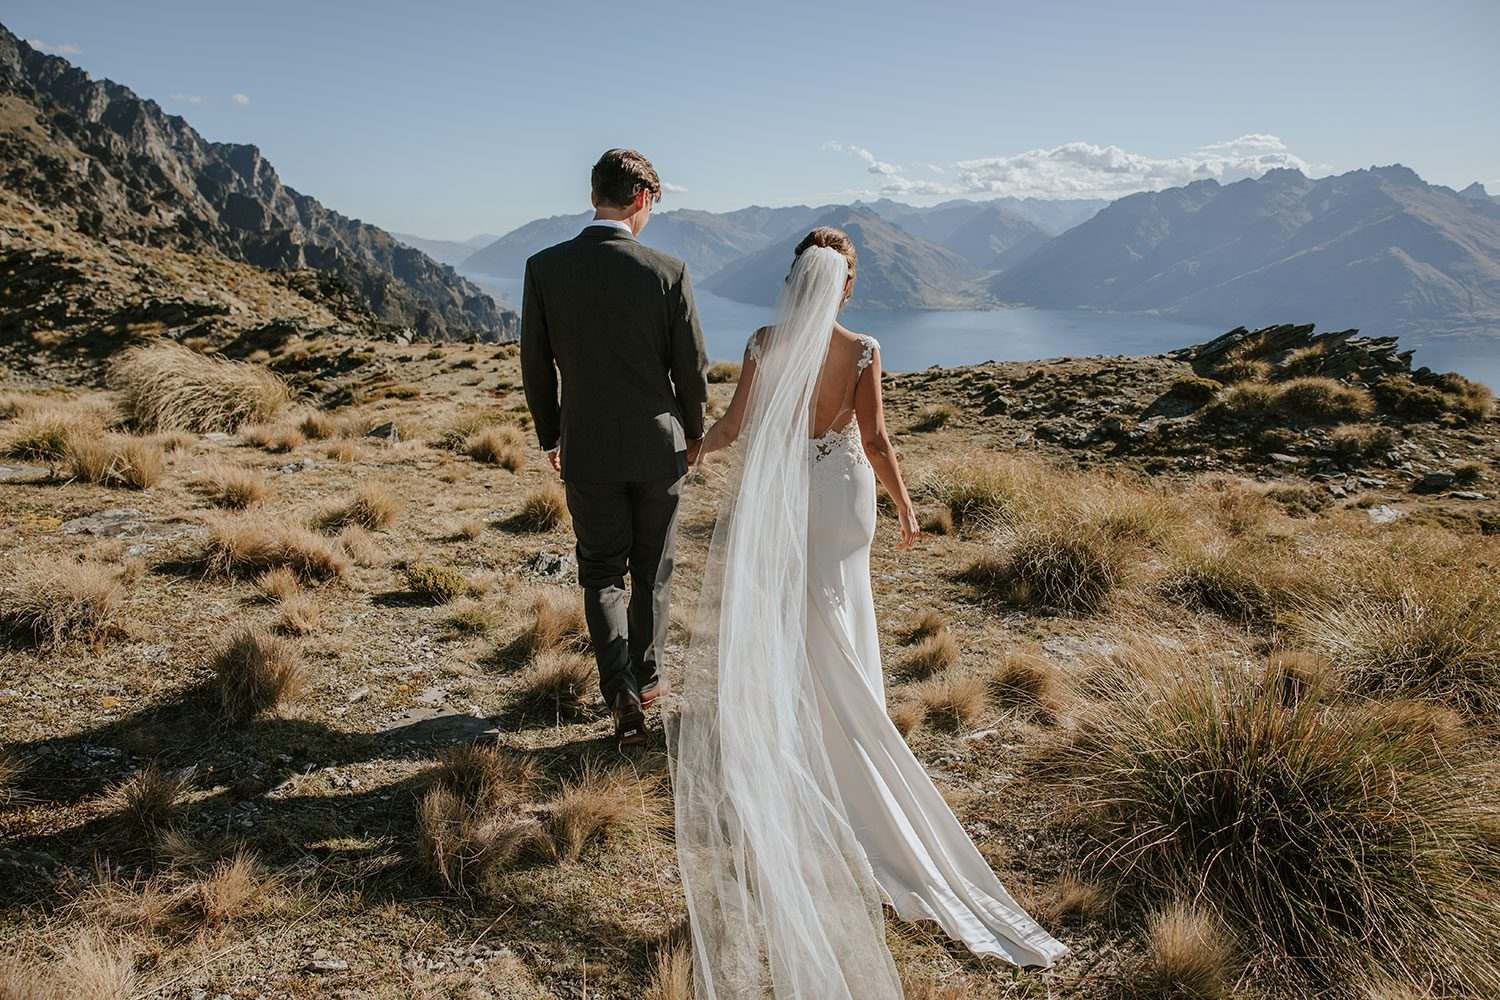 Bride wearing bespoke bridal gown with richly beaded lace over sheer tulle bodice and low back from Auckland wedding dress designer Vinka designs -hand in hand walking away